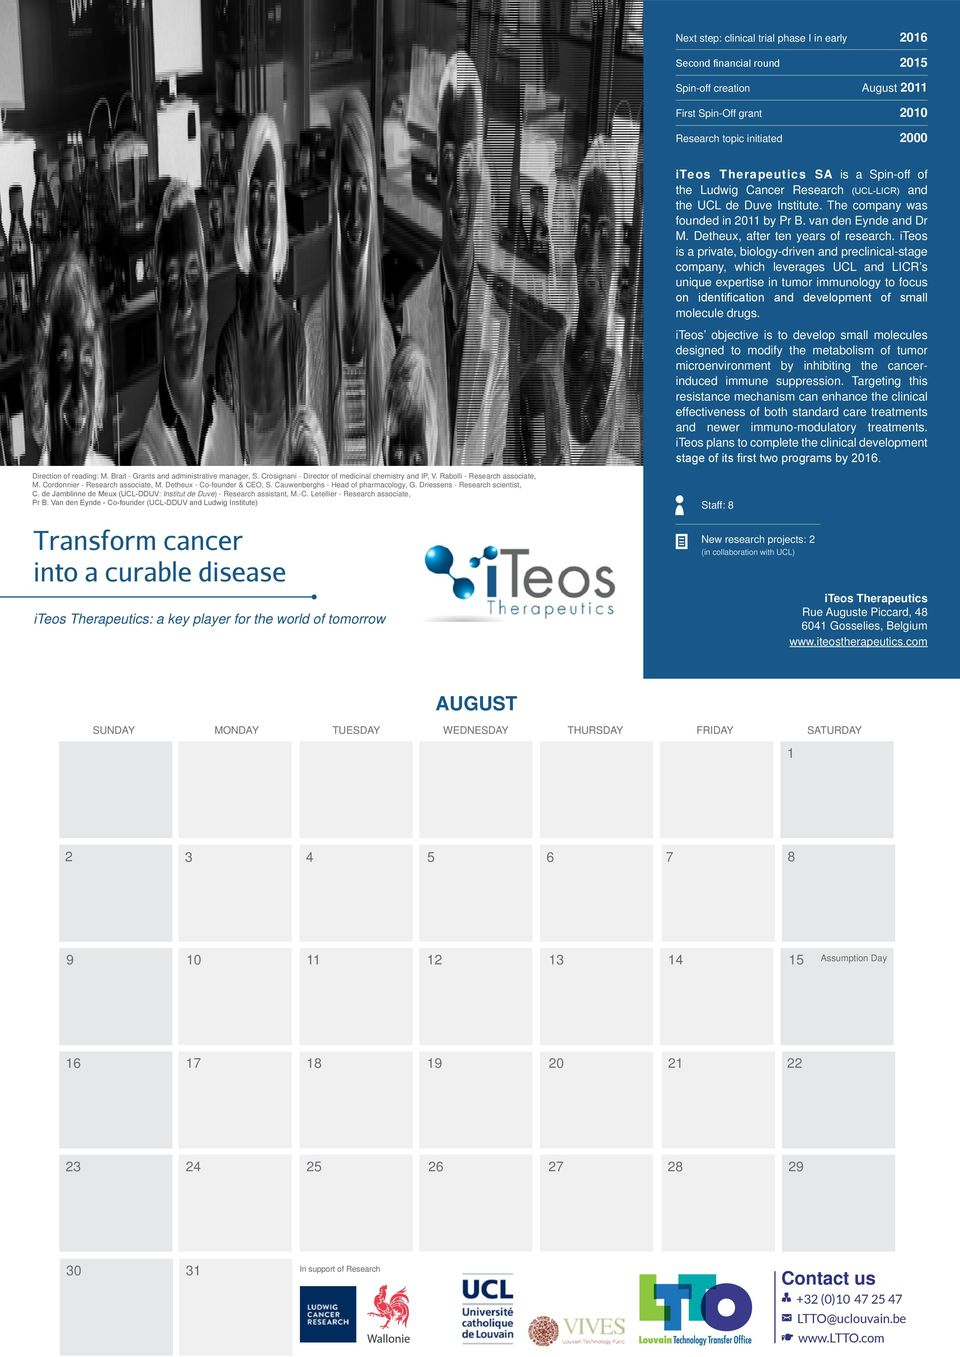 iteos is a private, biology-driven and preclinical-stage company, which leverages UCL and LICR s unique expertise in tumor immunology to focus on identification and development of small molecule